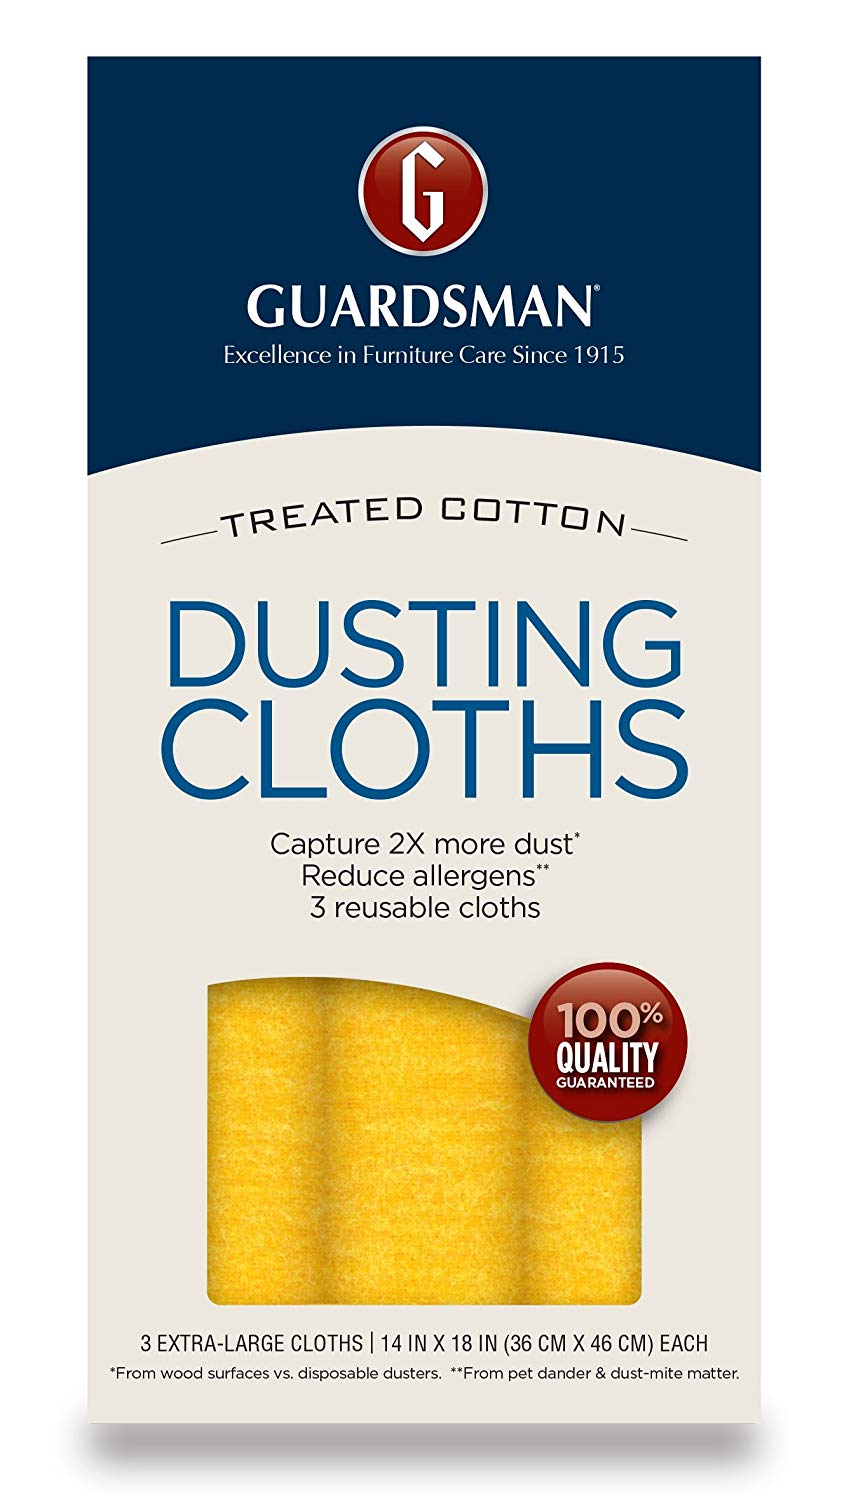 Dust clipart dusting cloth. Guardsman wood furniture cloths